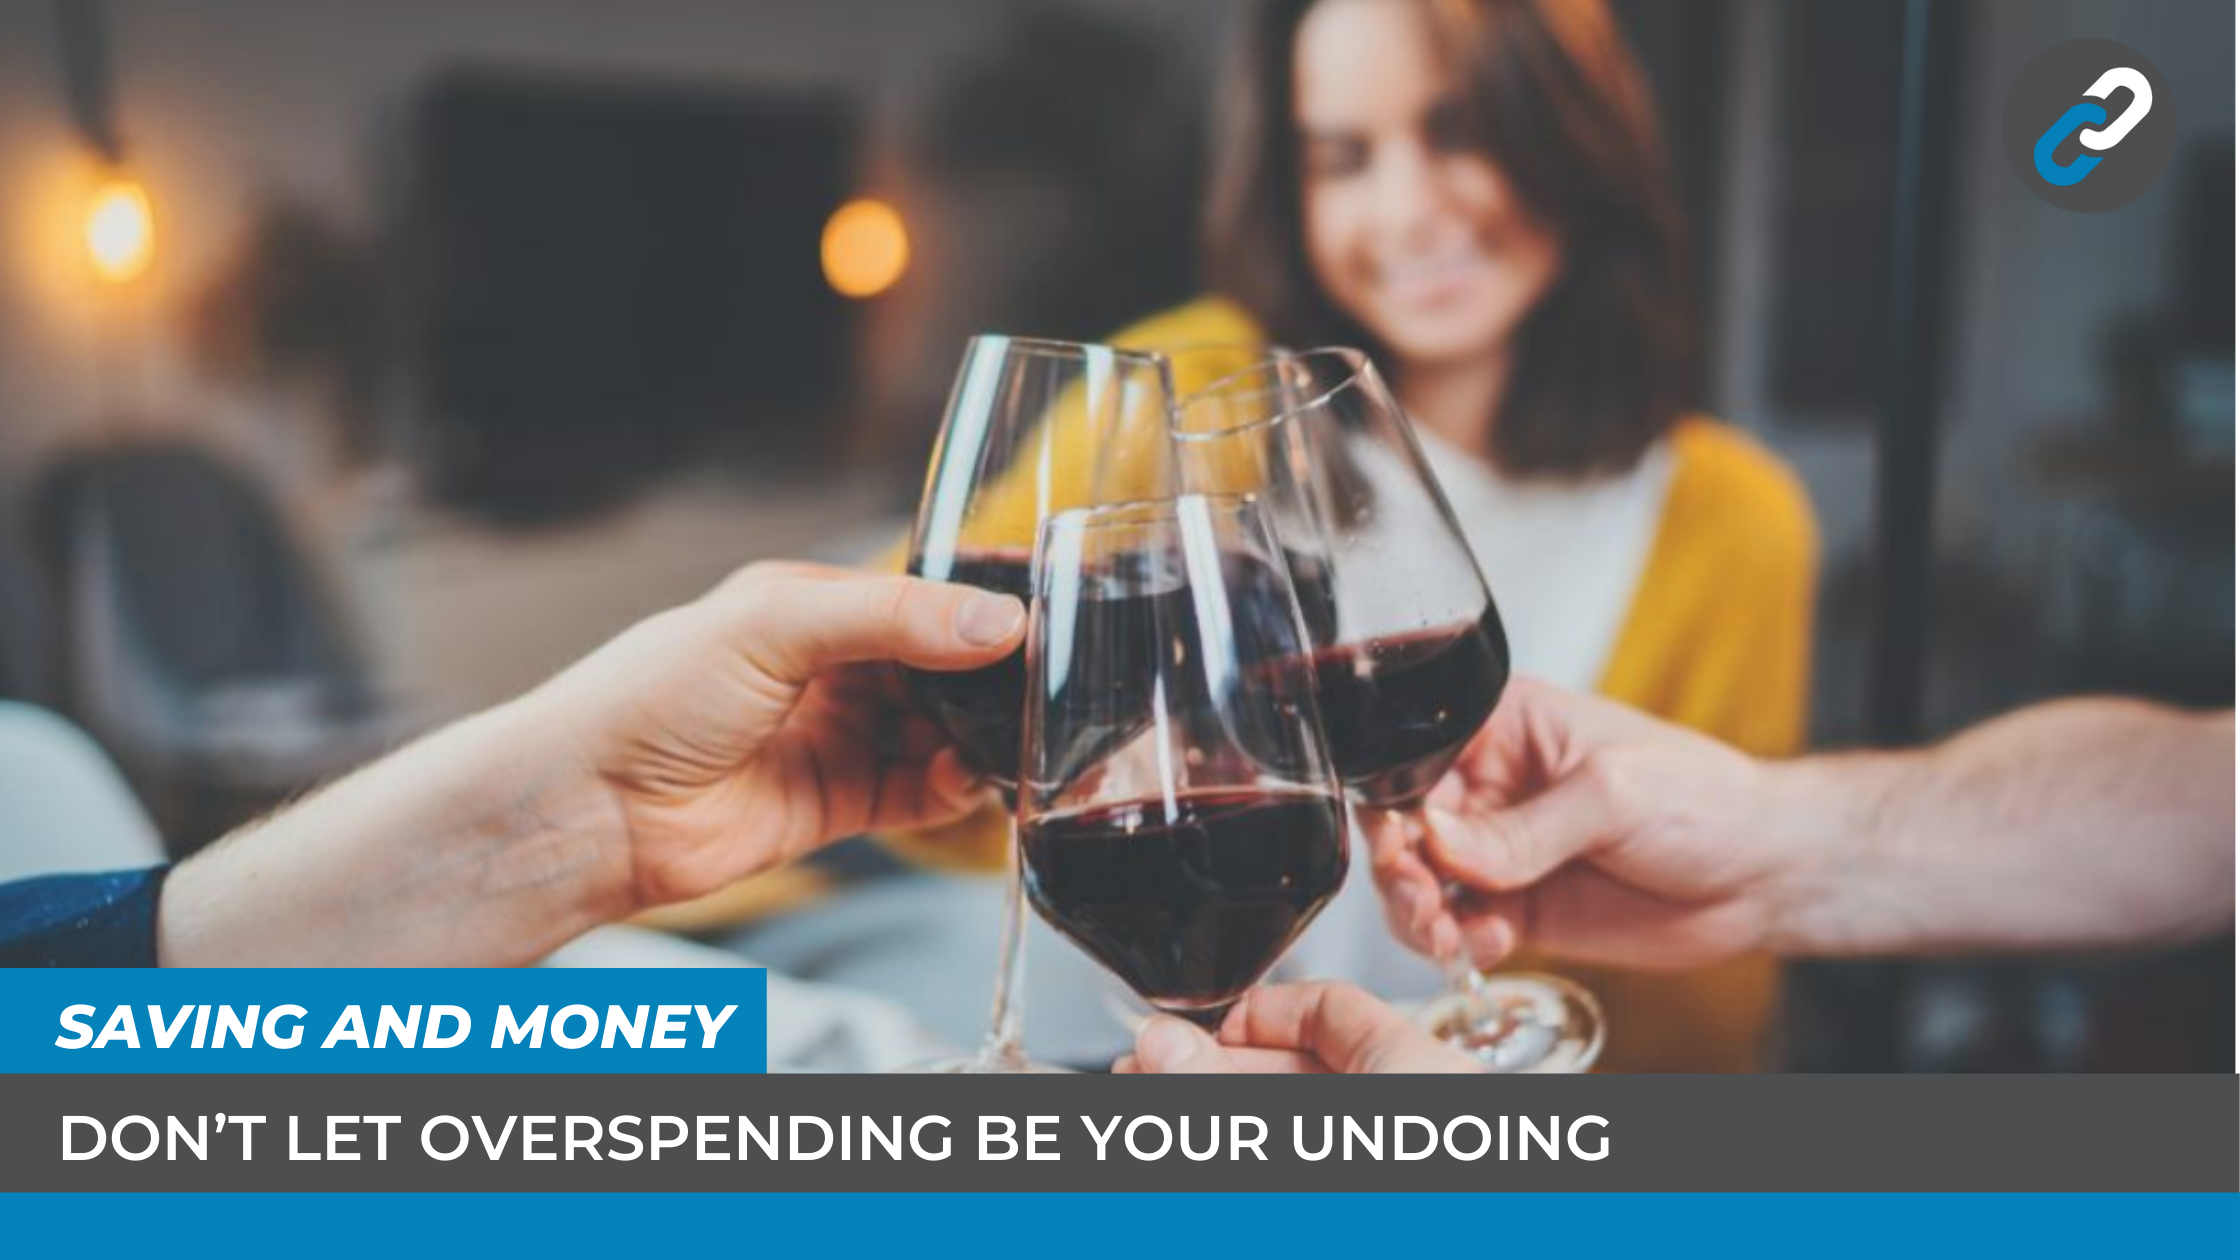 Don't let overspending be your undoing